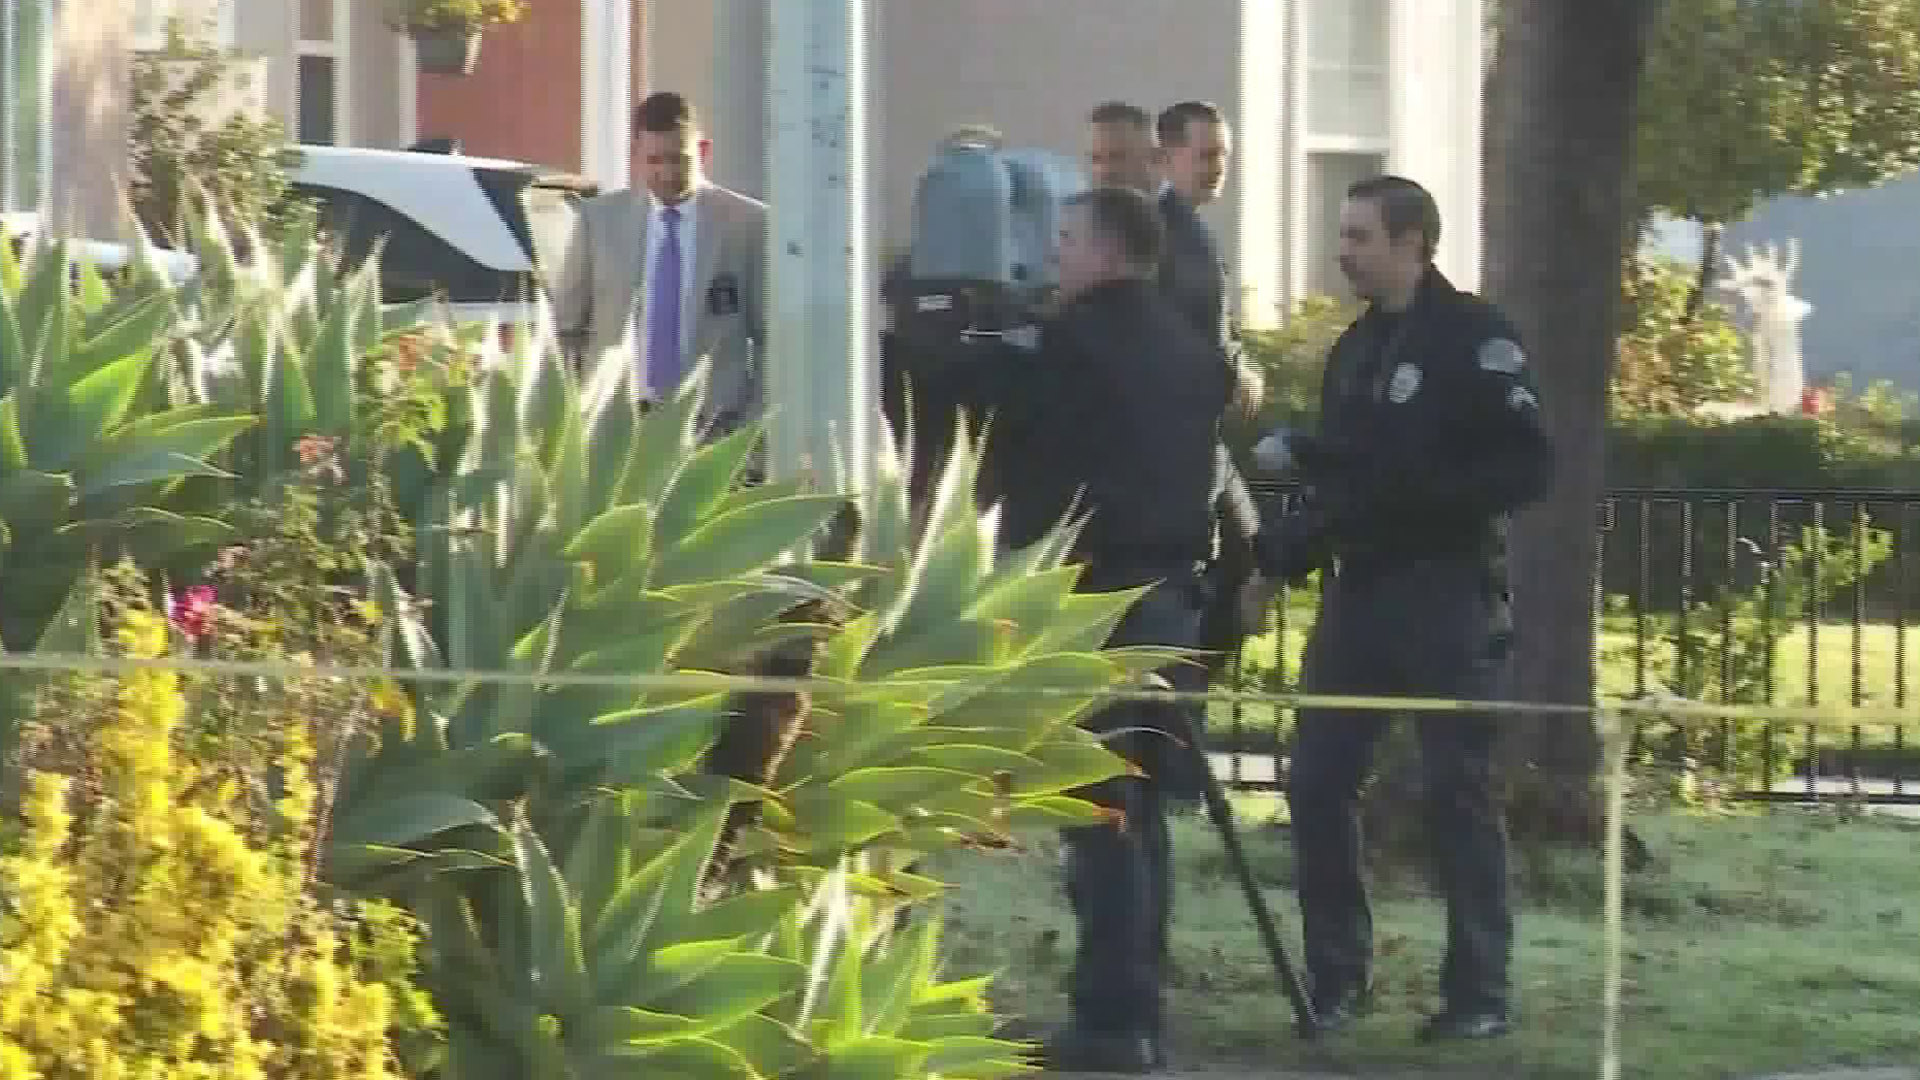 West Covina police assess the scene in the 1100 block of Larkwood Street the morning after a fatal shooting on Dec. 23, 2019. (Credit: KTLA)